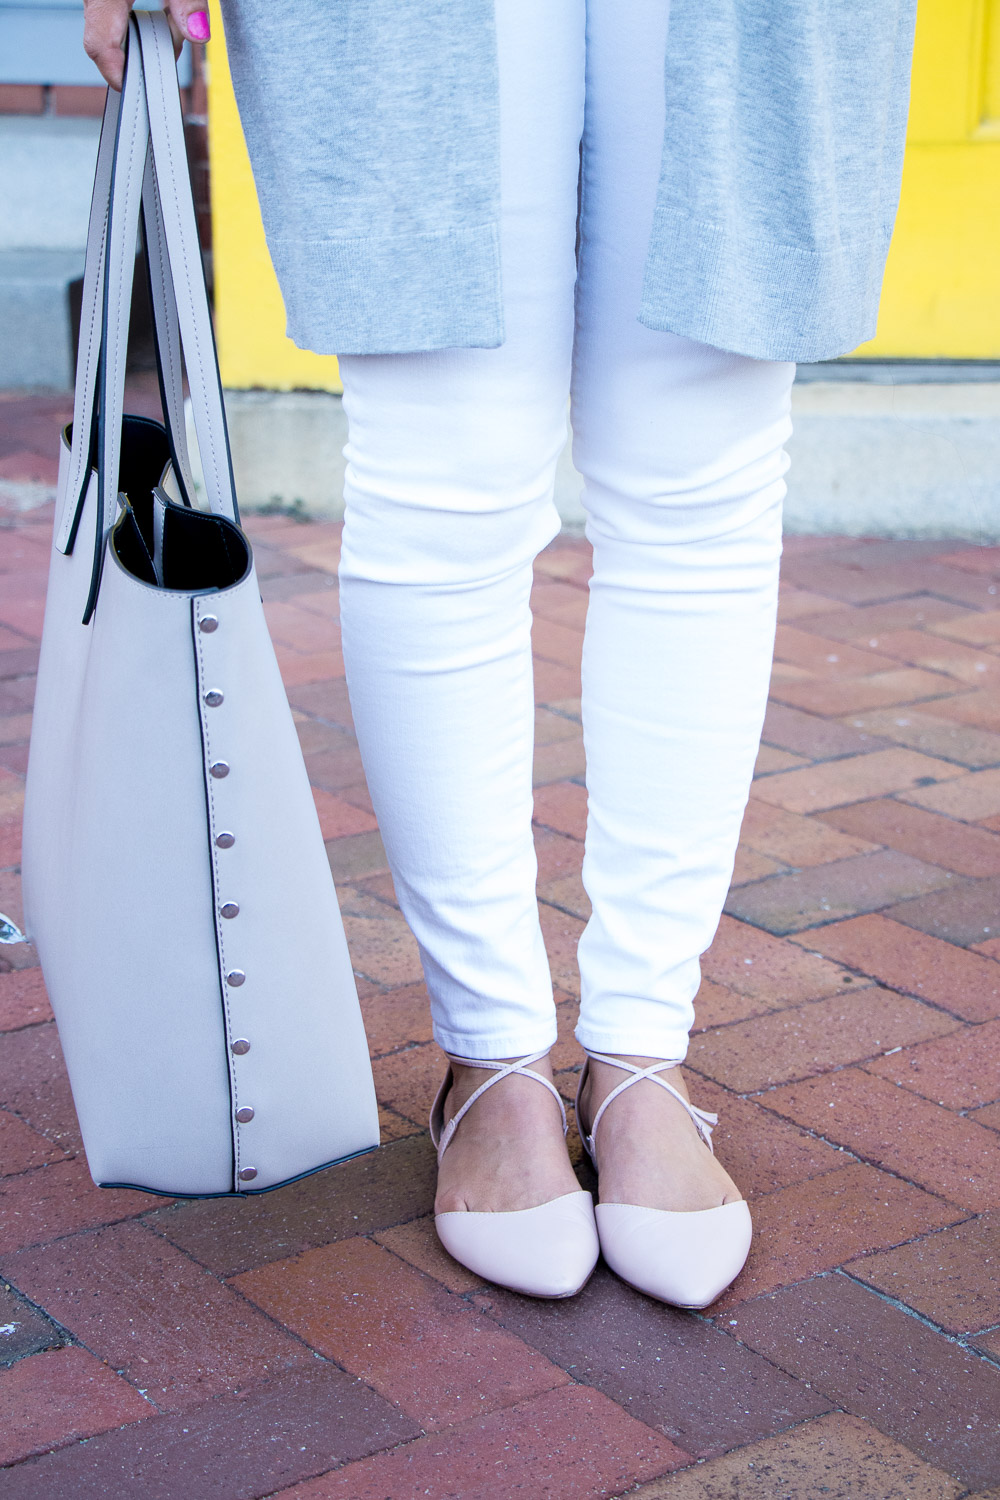 Ruffled tank top under a cardigan outfit with white jeans and blush flats